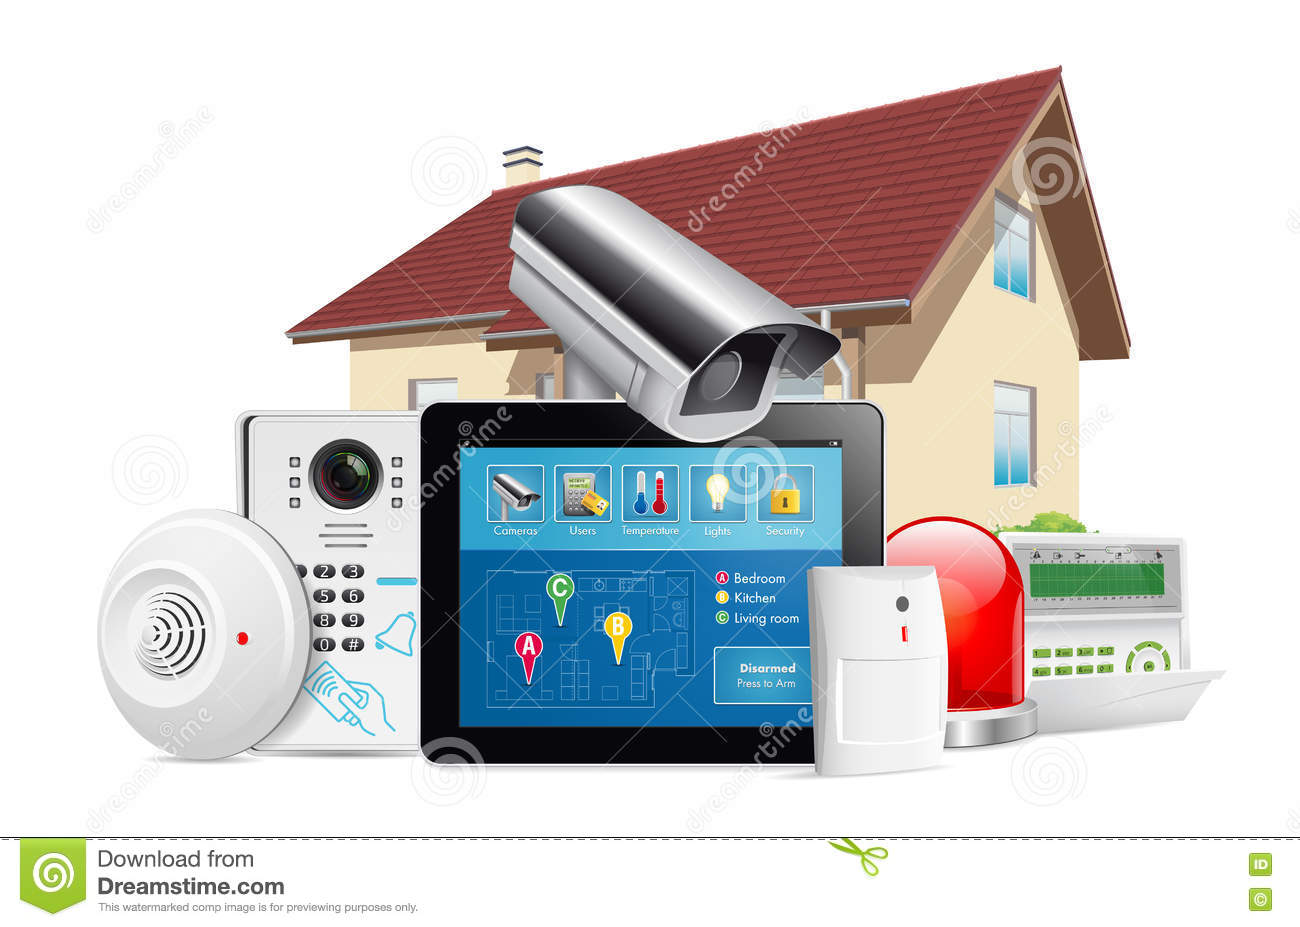 Download Home Security System Concept Stock Vector - Illustration of card cctv: 77720832